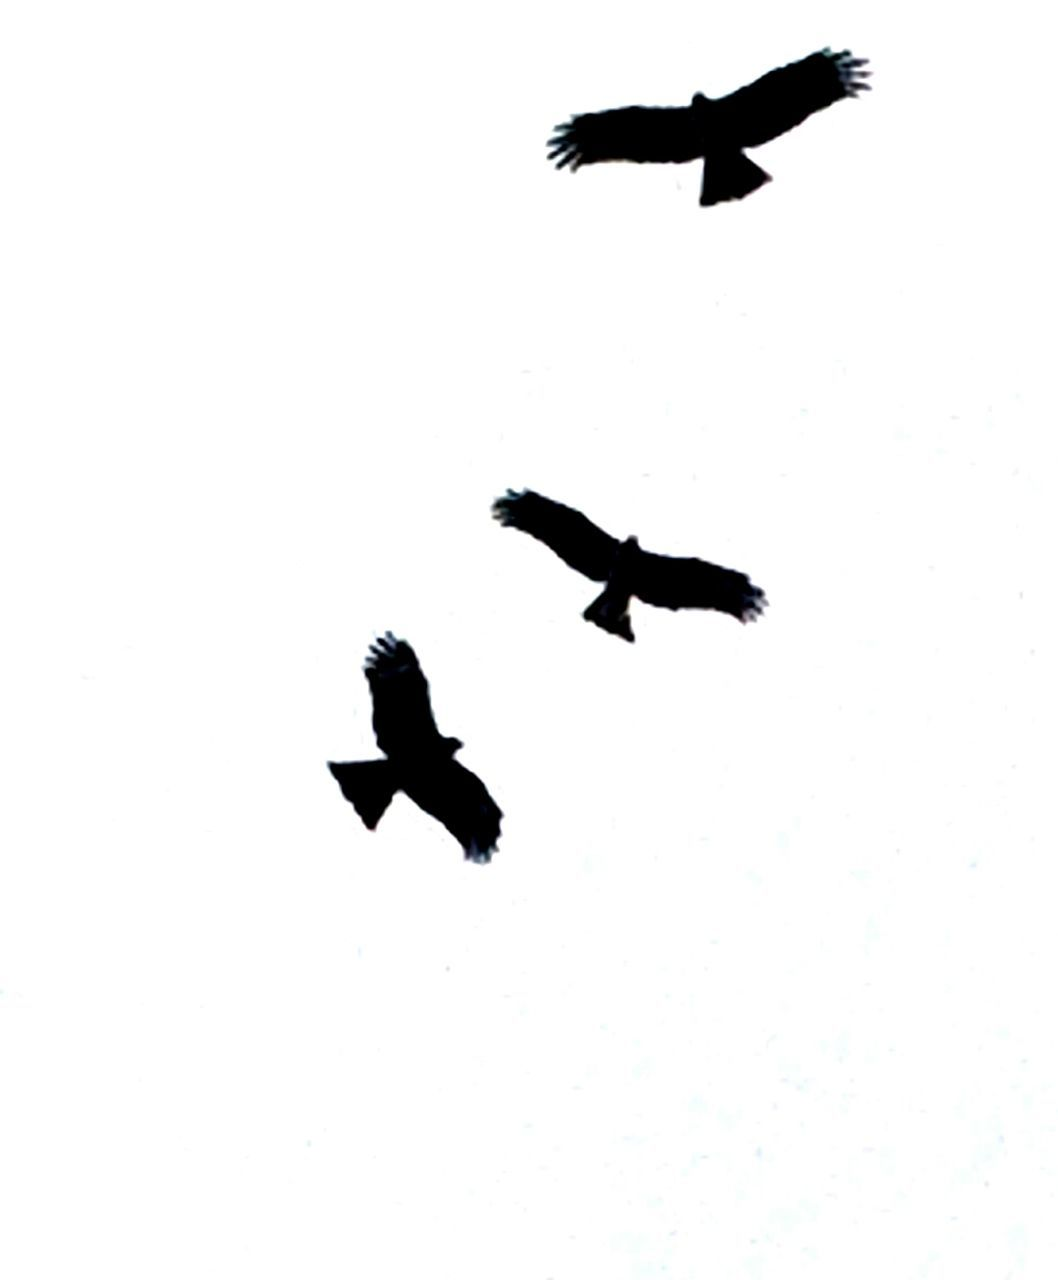 flying, bird, spread wings, mid-air, animal themes, animals in the wild, wildlife, low angle view, clear sky, silhouette, flight, freedom, motion, nature, on the move, seagull, copy space, sky, outdoors, no people